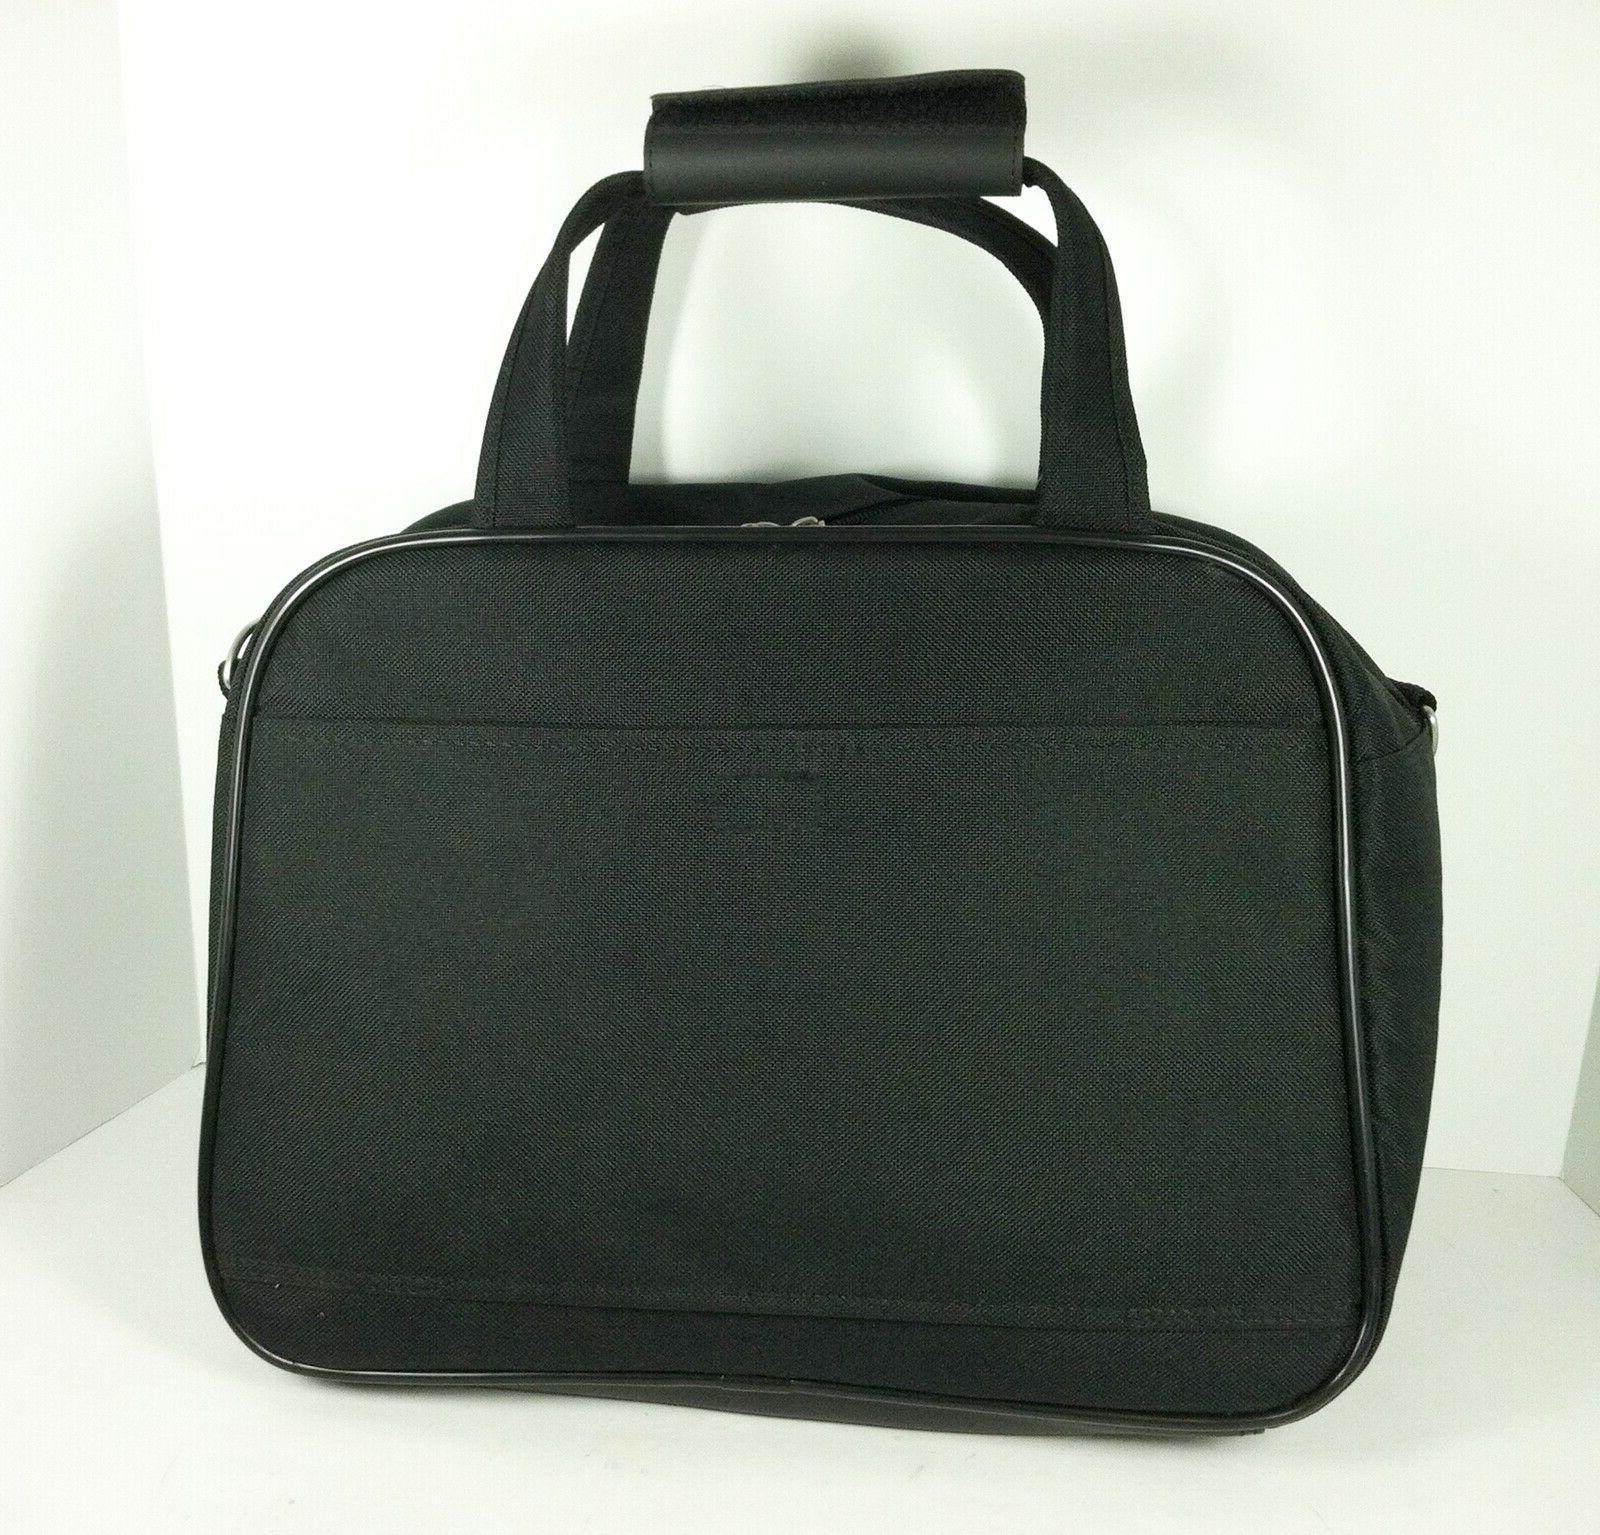 Samsonite Shoulder Bag Boarding Carry Travel Luggage Business